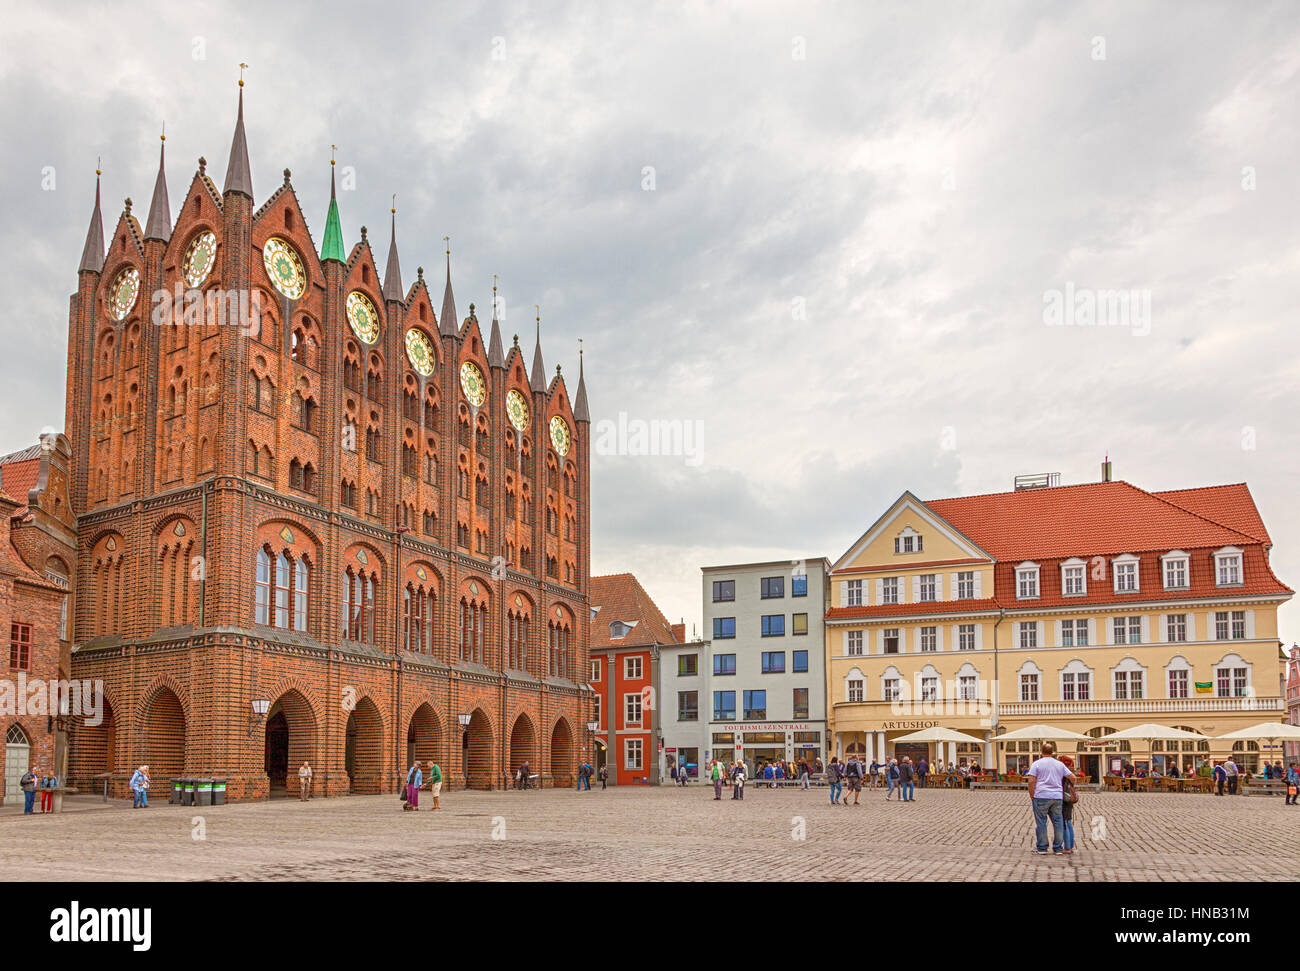 Stralsund, Germany - September 23, 2016: Alter Markt, the central square of Stralsund with the gothic town hall. - Stock Image